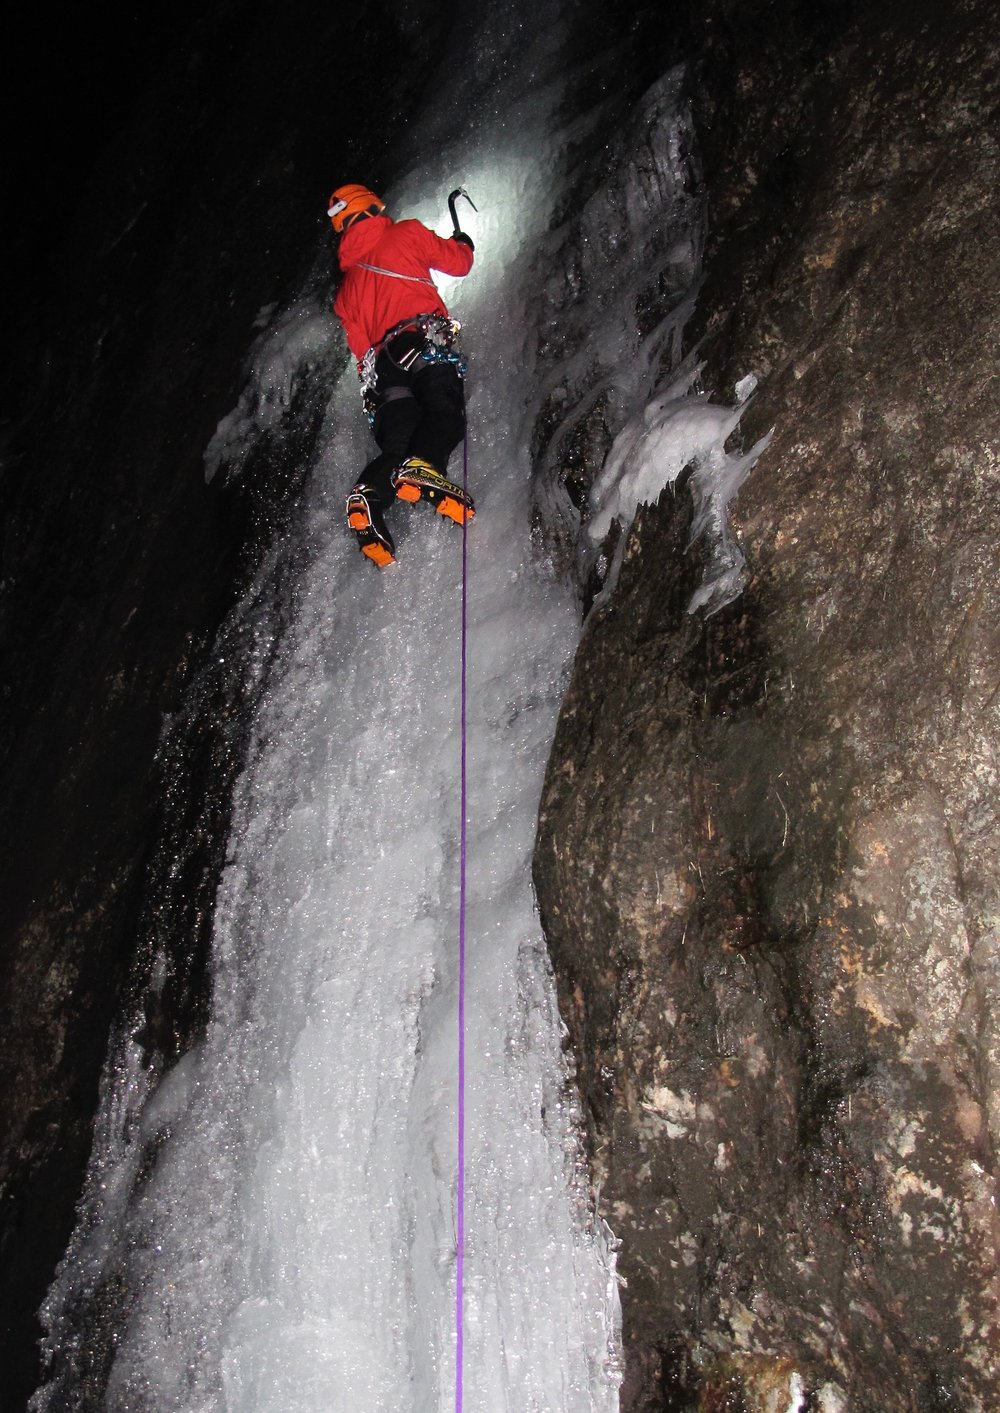 Central Icefall Direct WI 6, pitch 1, during the 'Welsh Ice Triple' with Tim Emmett.  Photo: Gresham collection